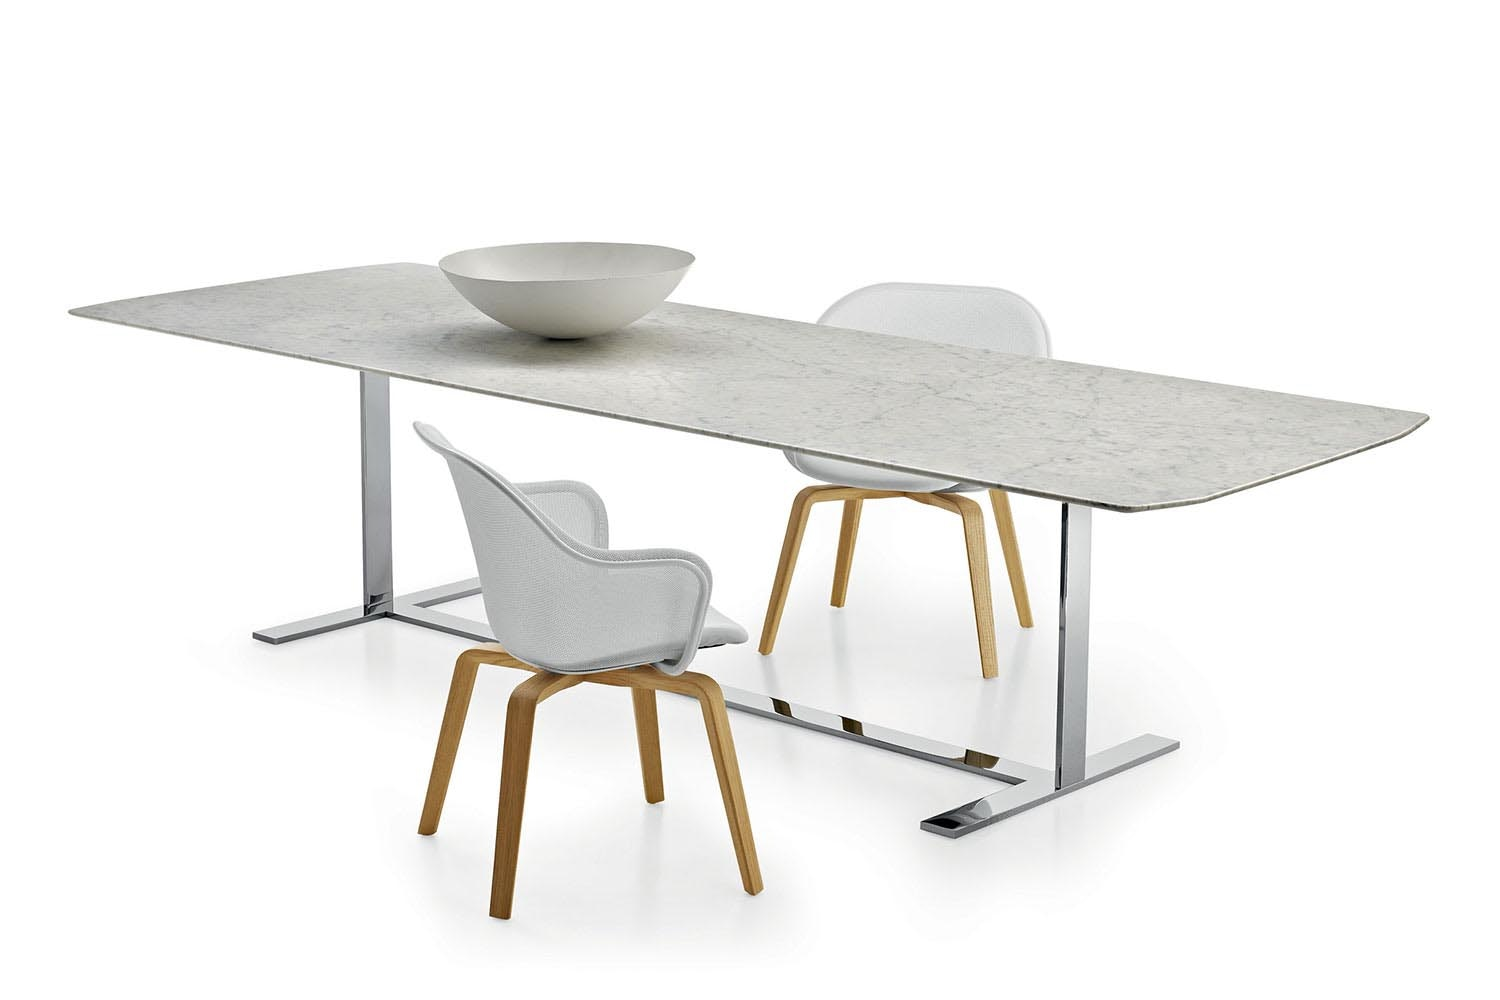 Eileen Table by Antonio Citterio for B&B Italia